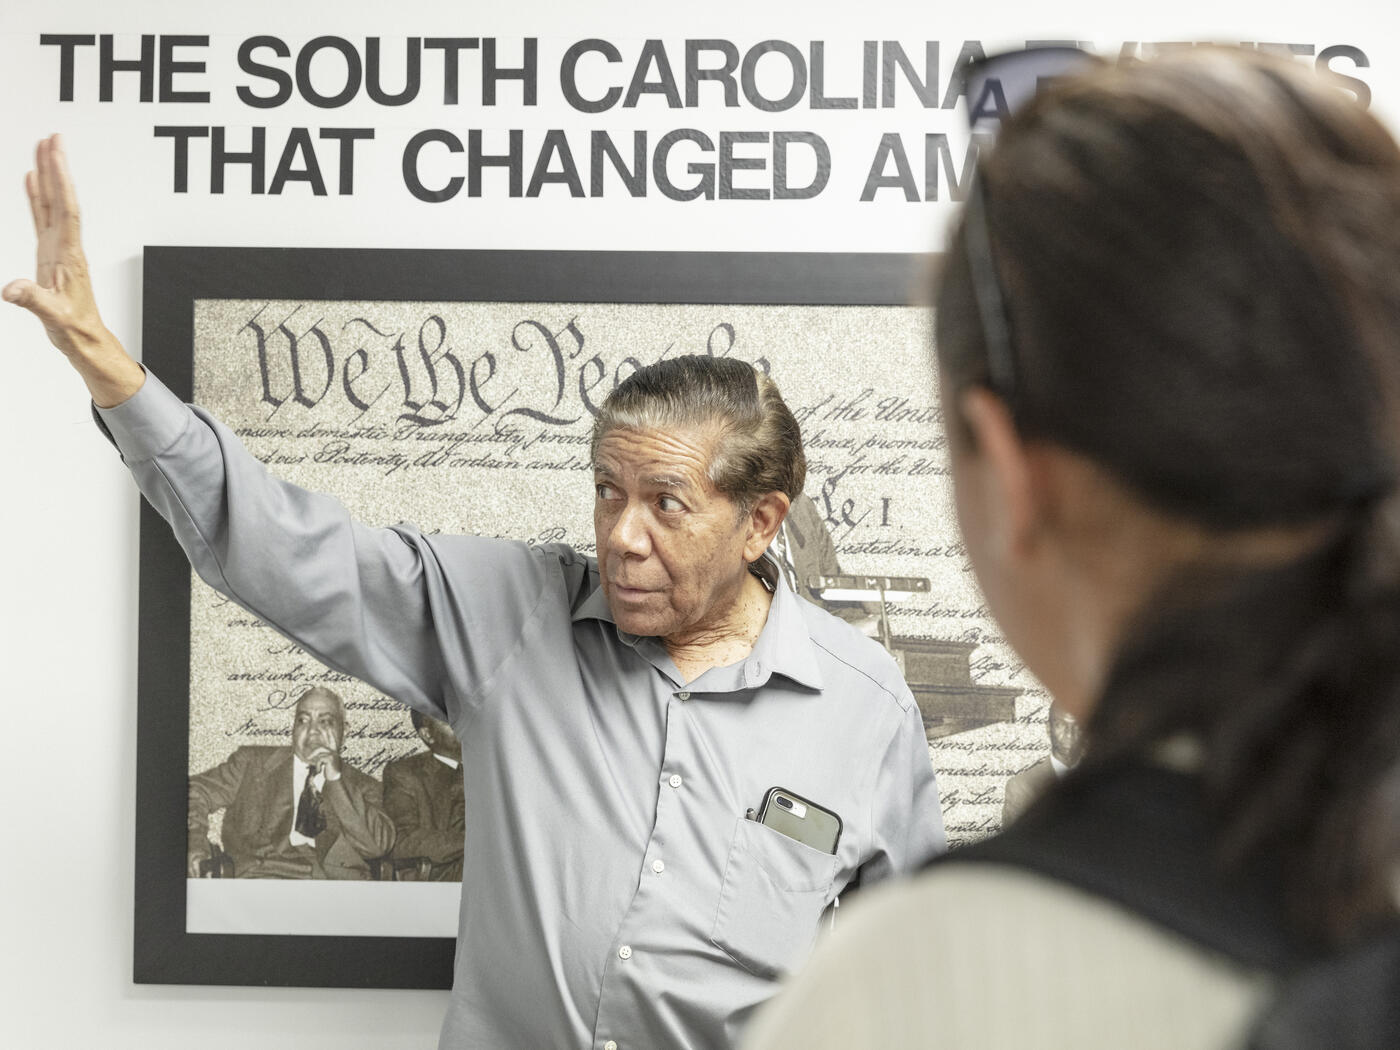 USA Lab: Bringing the Role of Orangeburg, S.C., in Civil Rights Movement to Light